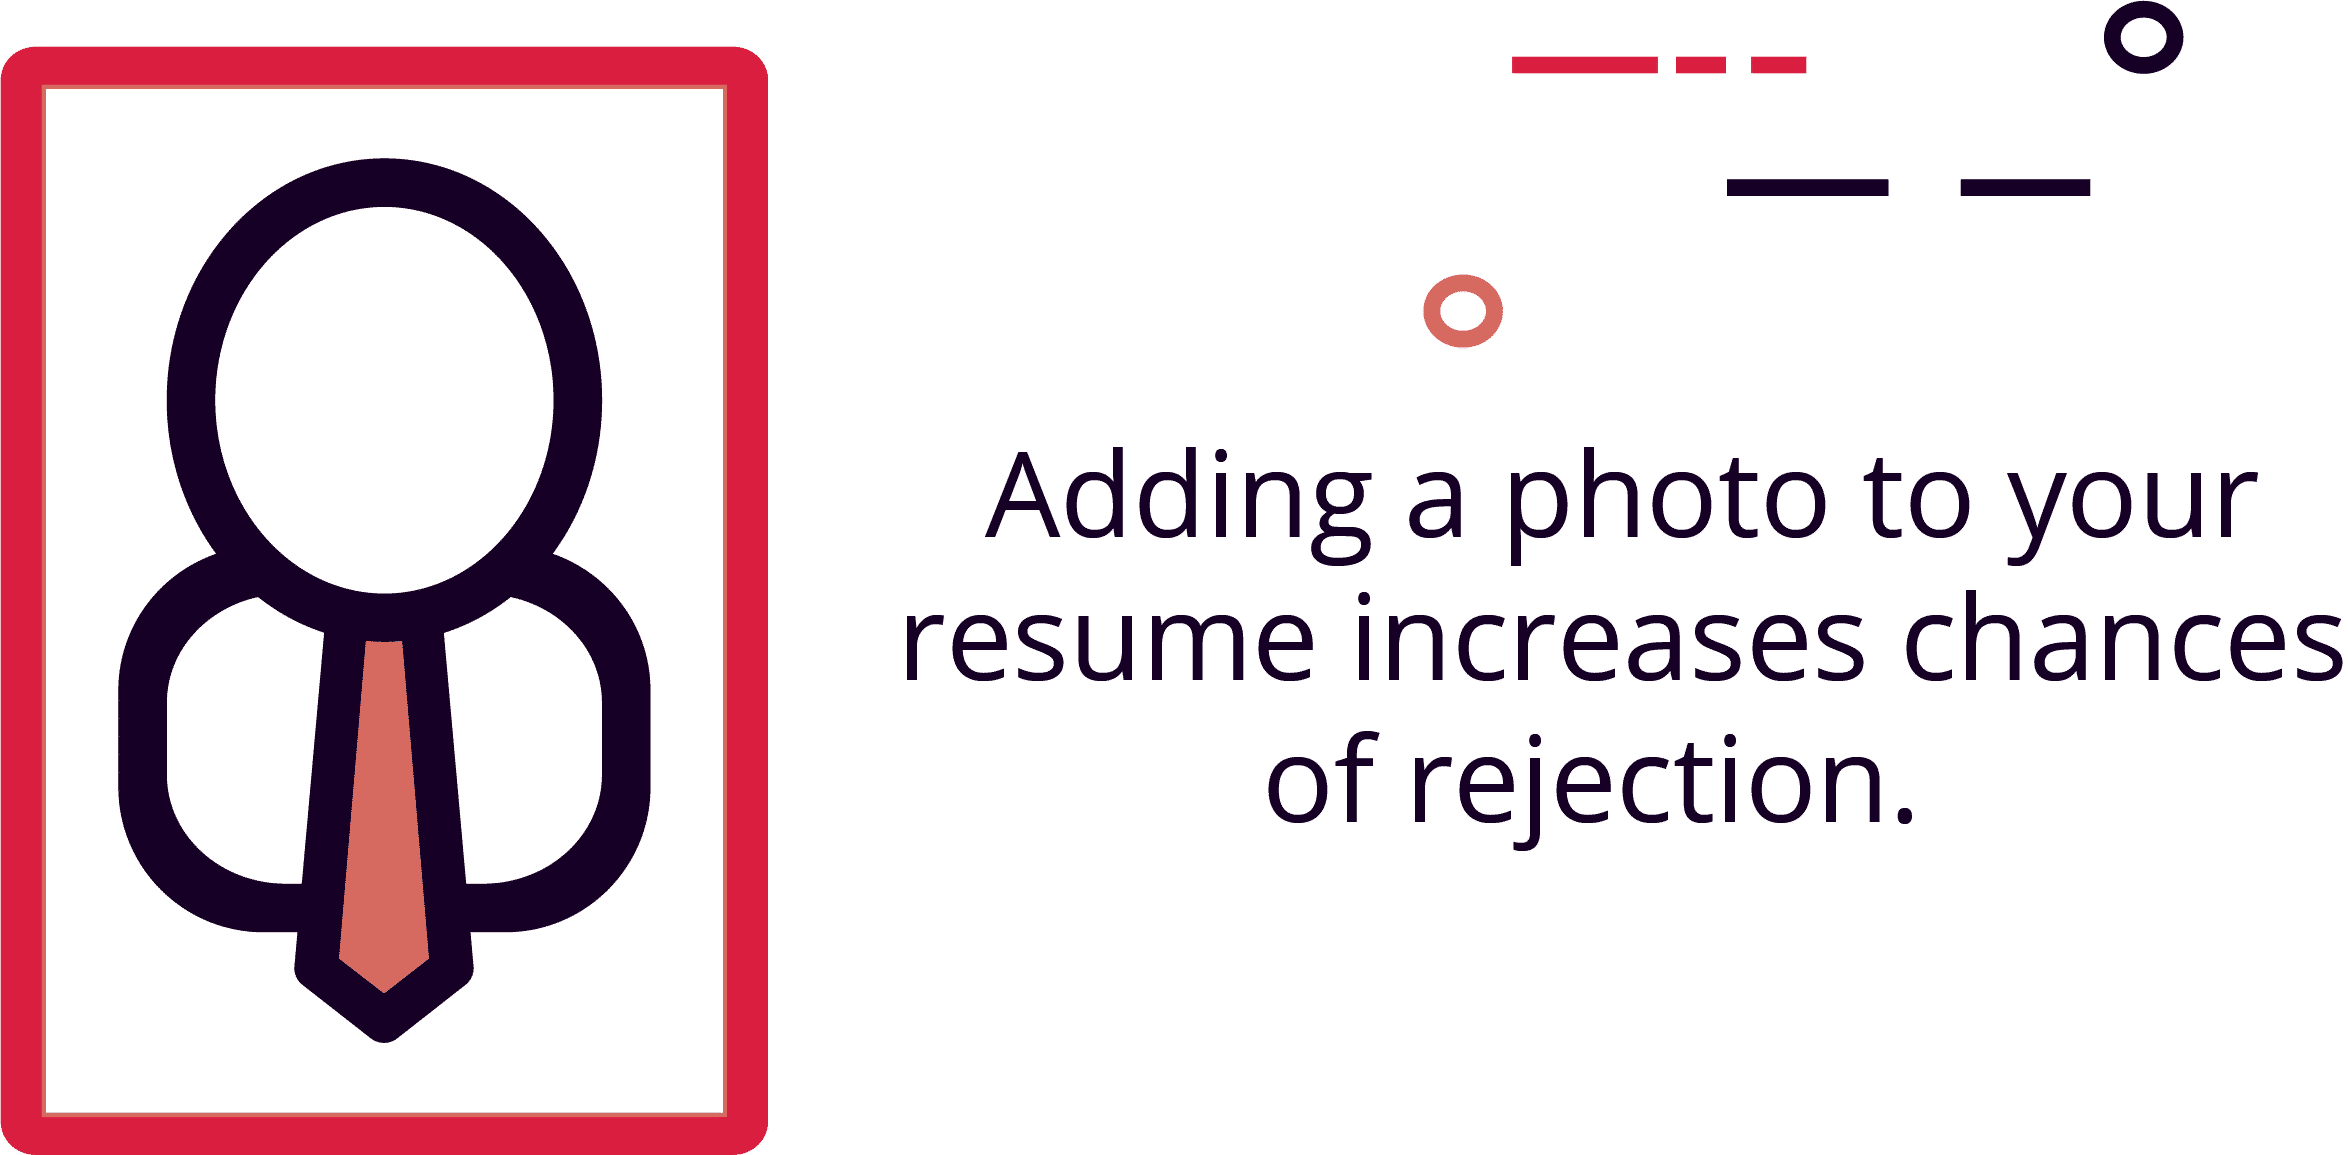 Resumes with photos are 88% more likely to be rejected